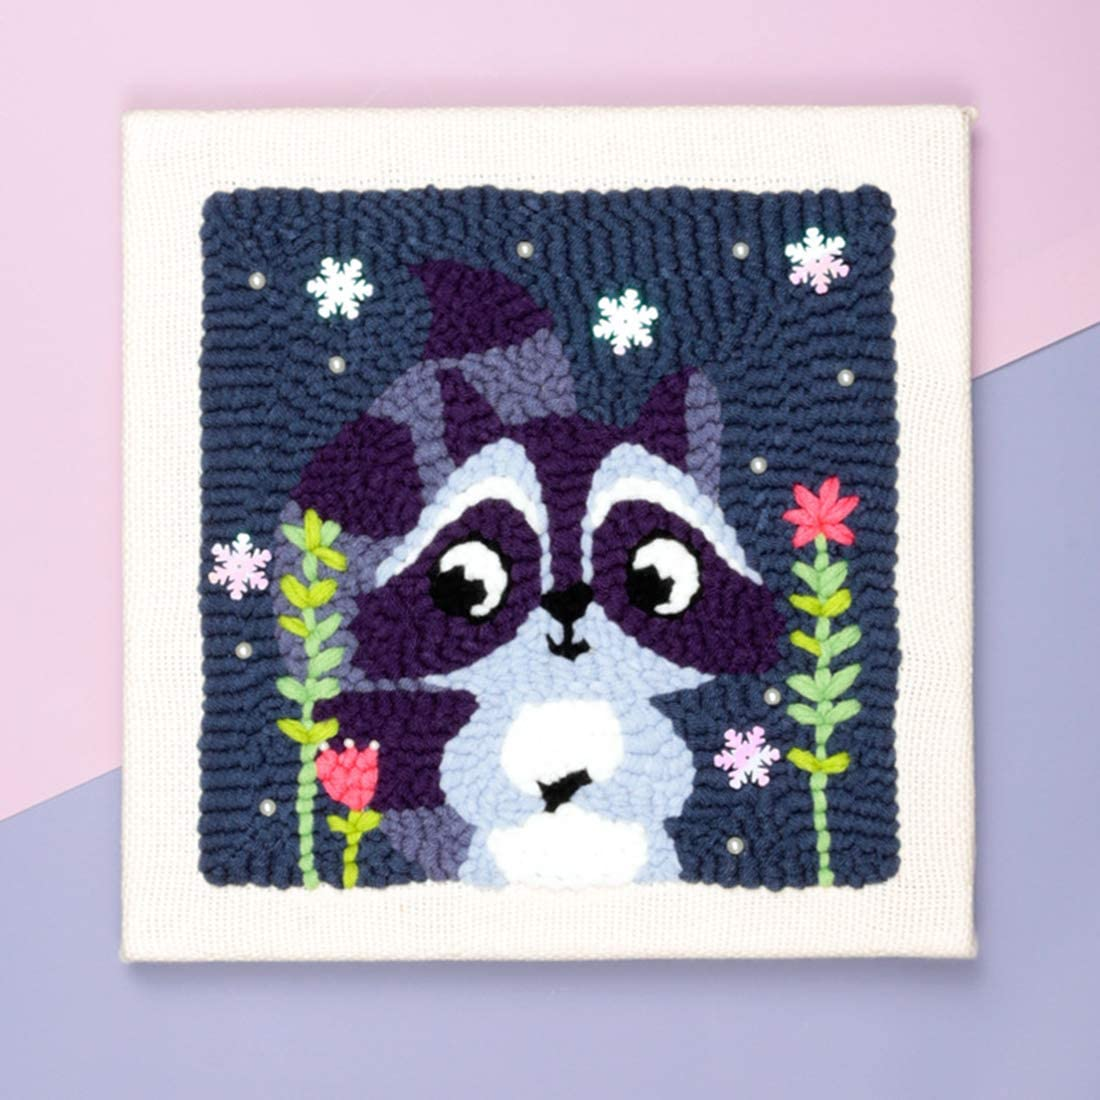 Raccoon XSHION Latch Hook Kit for Adults and Kids Needlework Craft Gift Home Decor DIY Handcraft Rug Hooking Kit Knitting Wool Embroidery Kit with Embroidery Frame and Punch Needle